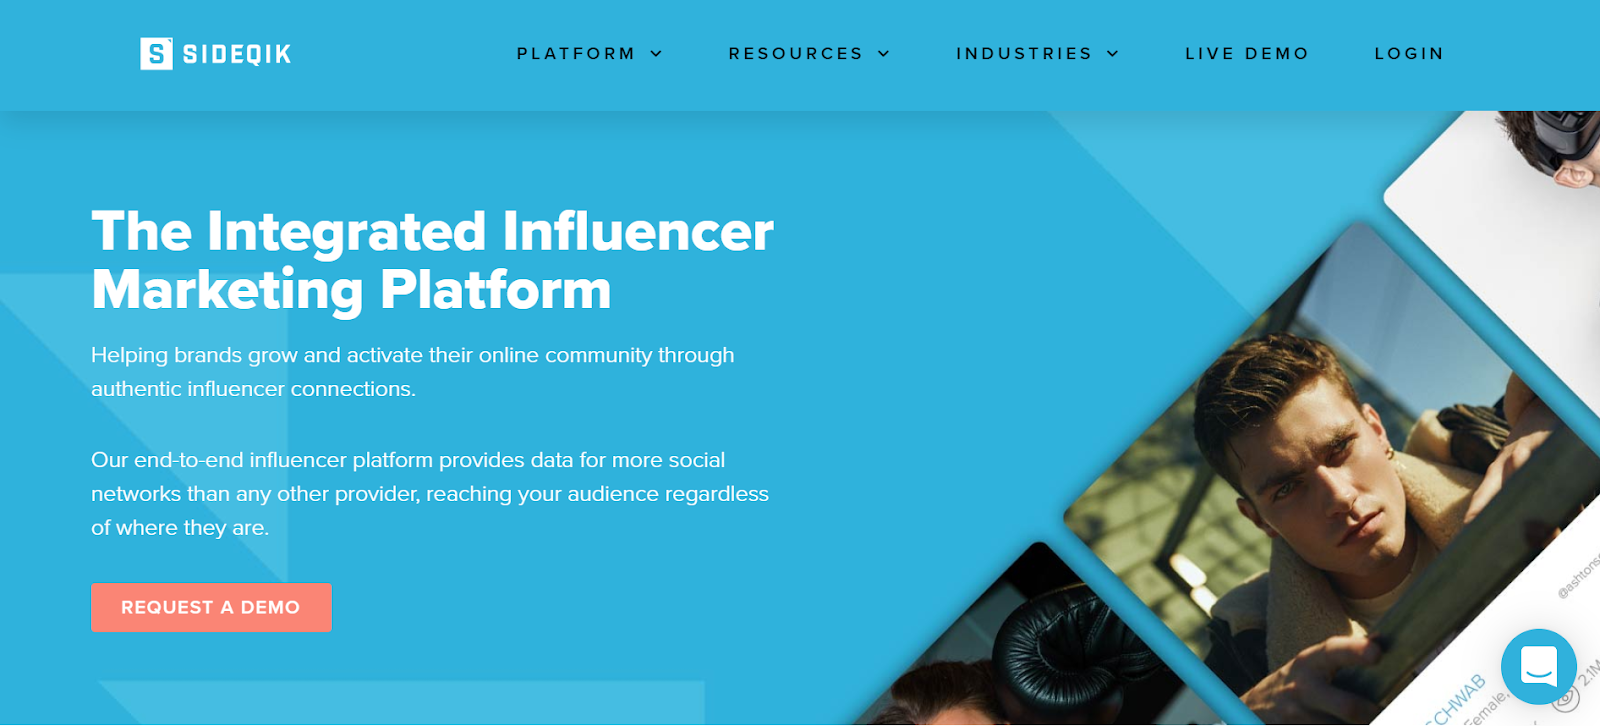 Sideqik Influencer Marketing Platform